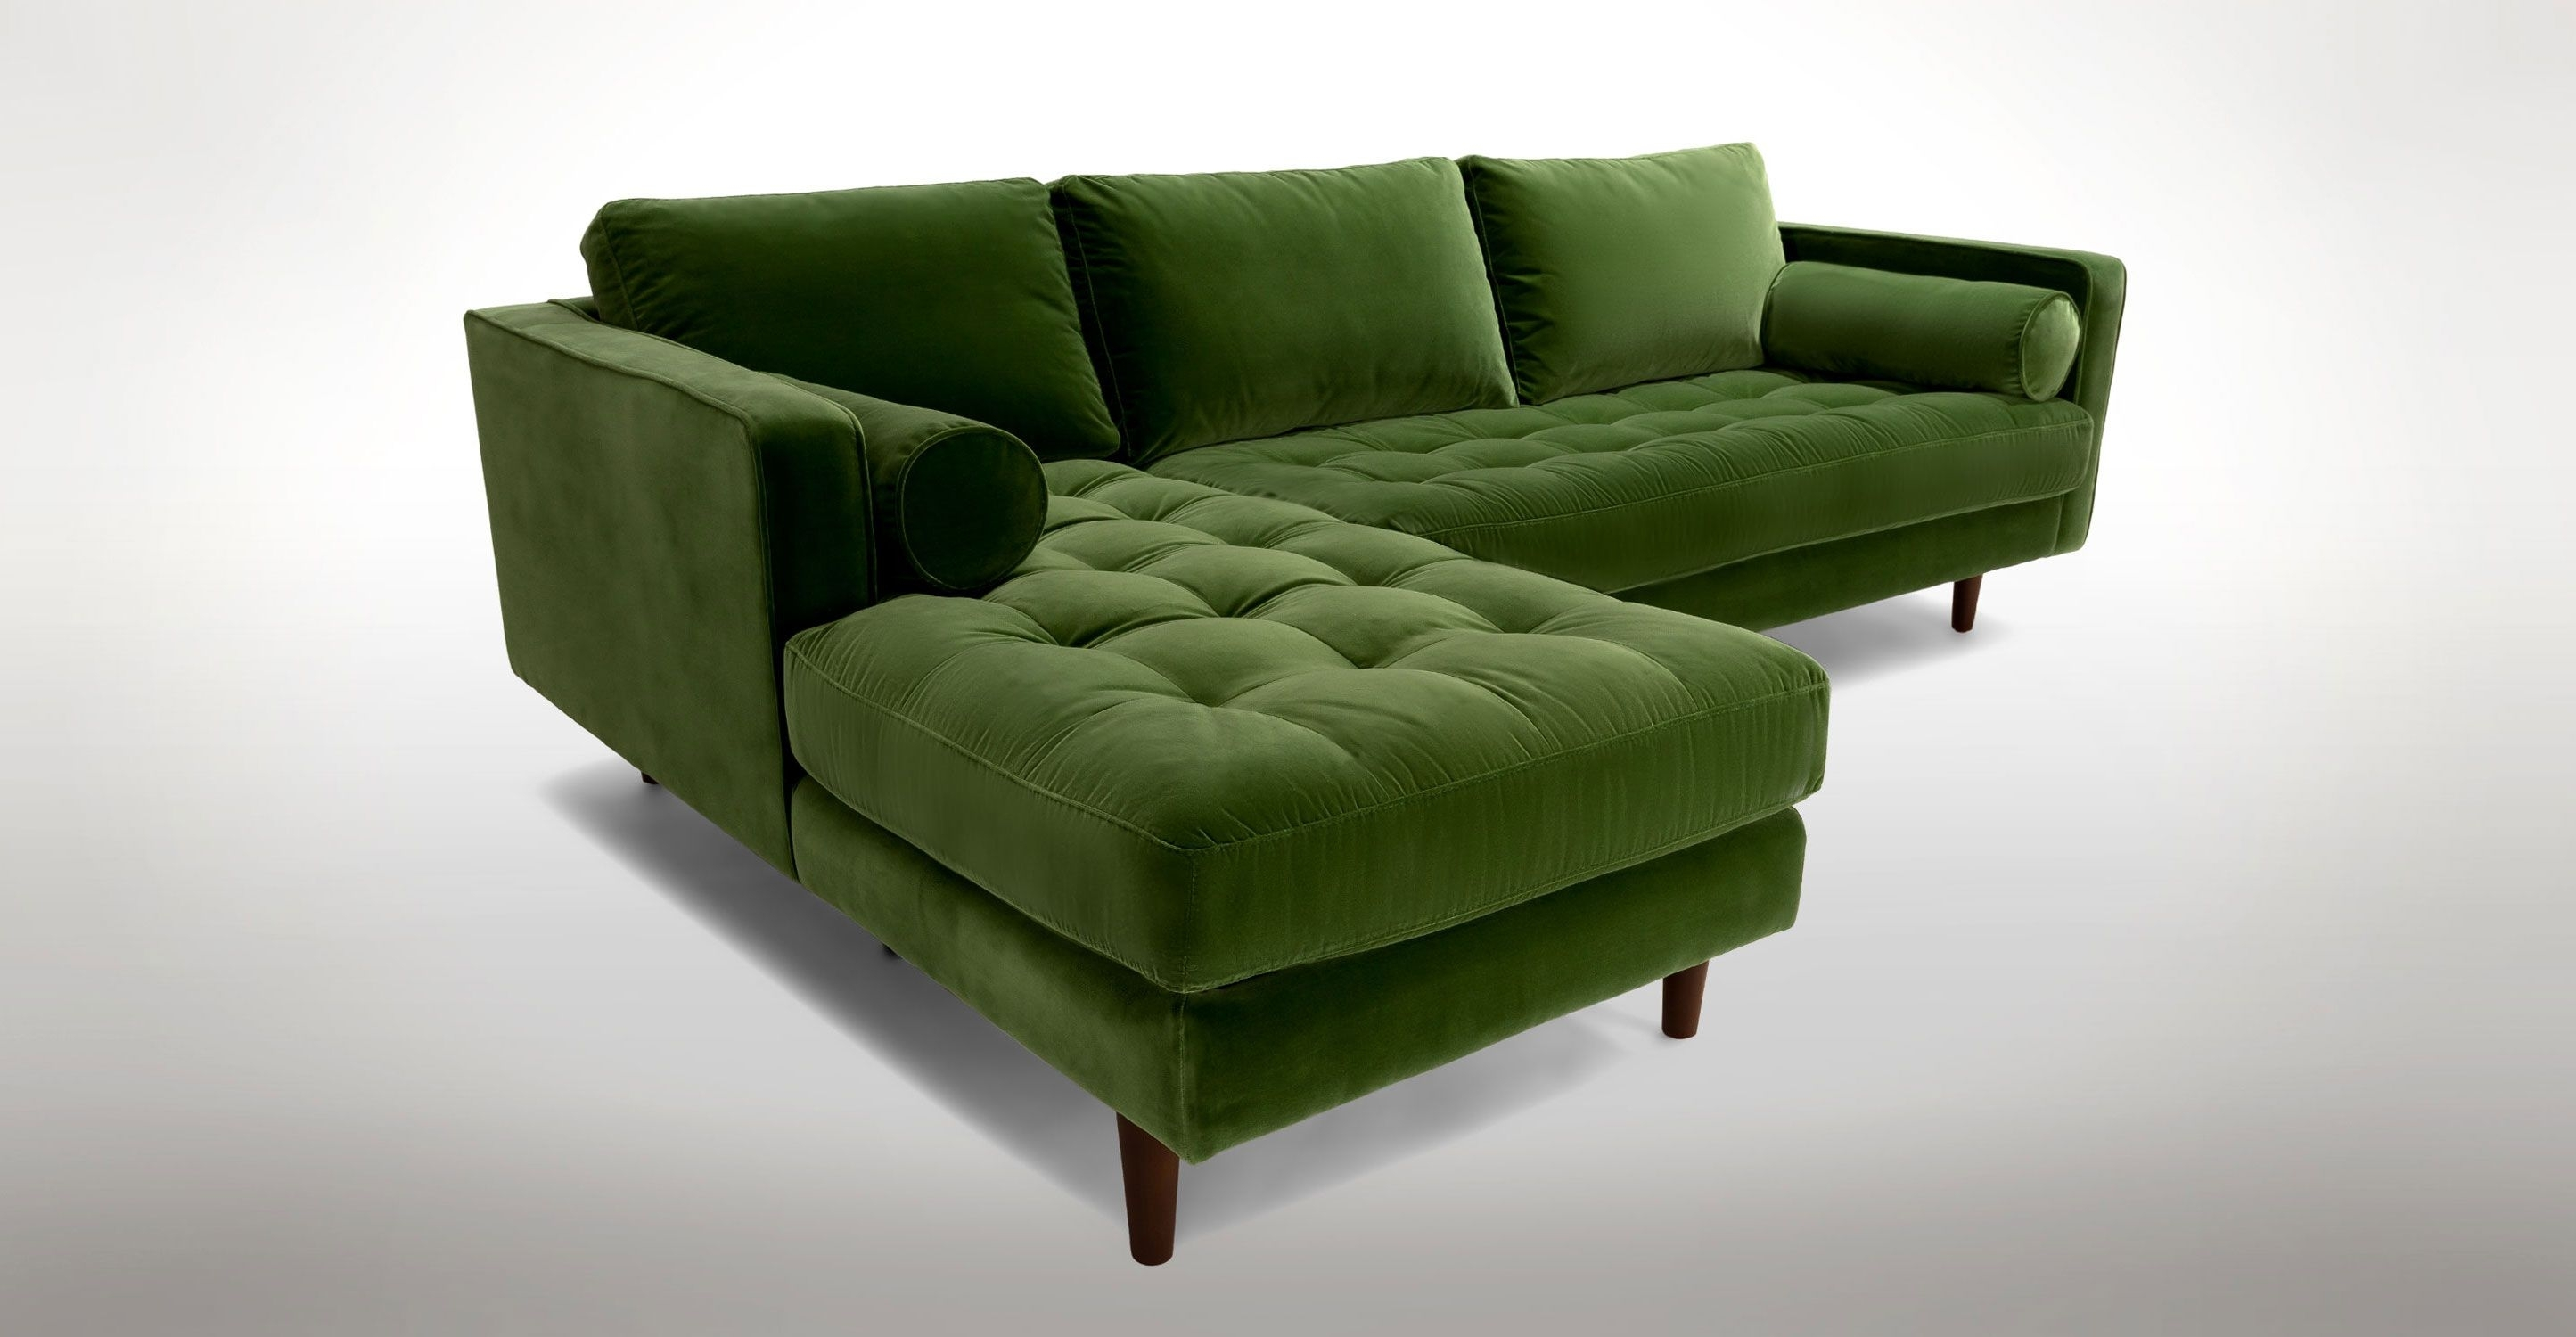 10 Best Ideas Green Sectional Sofas Sofa Ideas